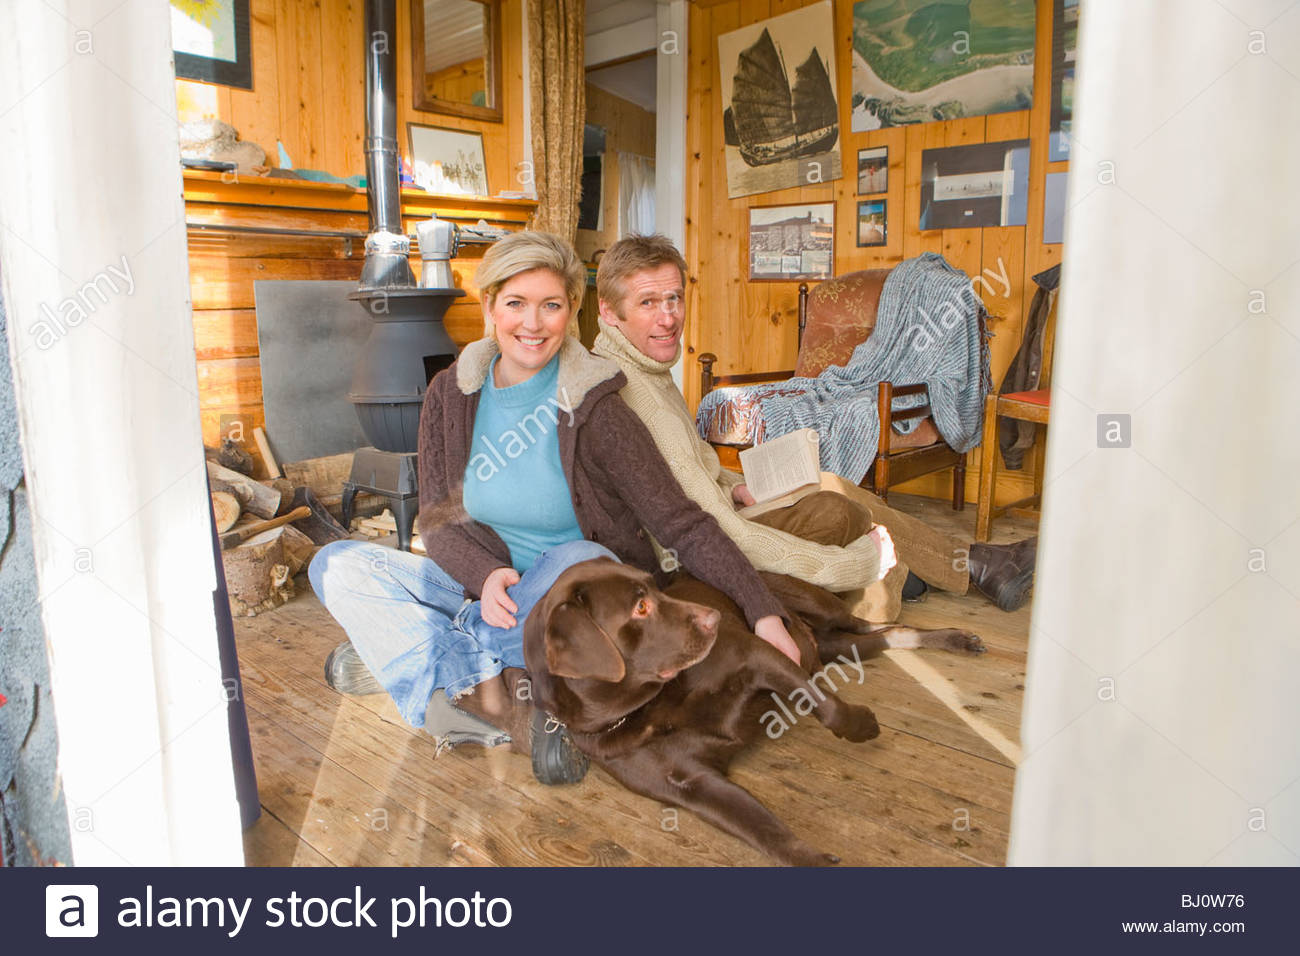 Couple relaxing in living room with pet dog - Stock Image